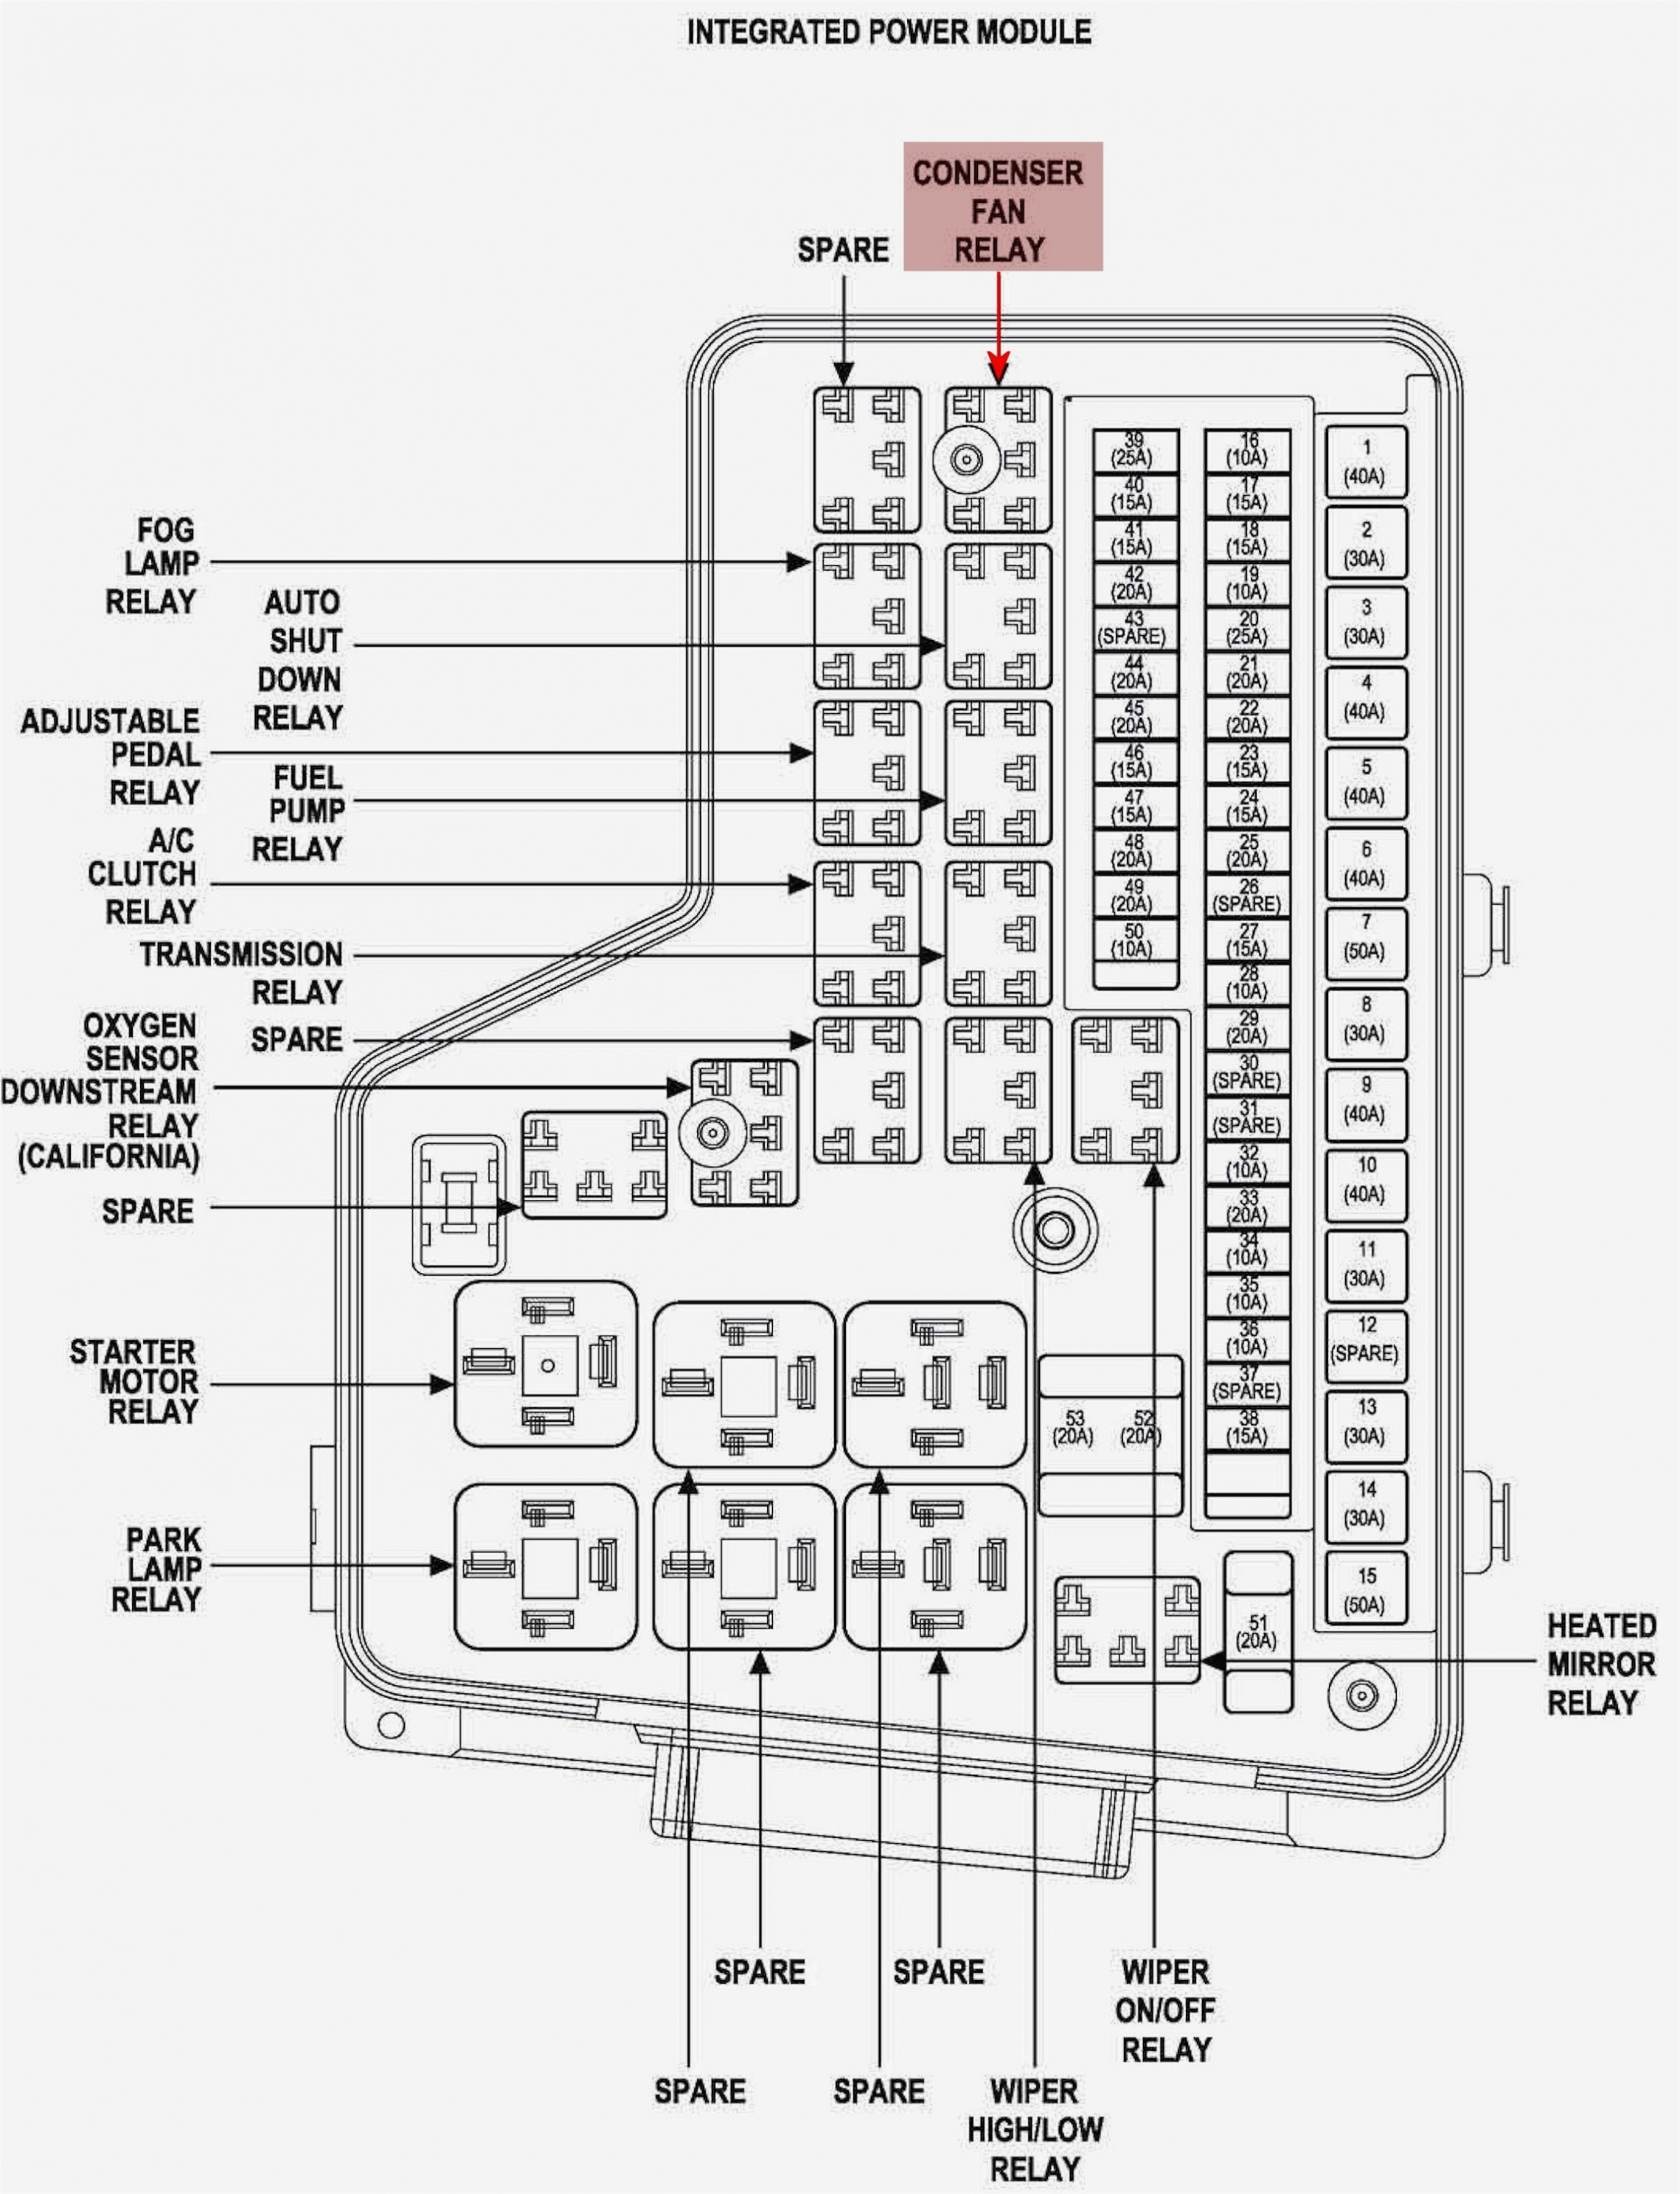 Chevy Expres Fuse Box Diagram